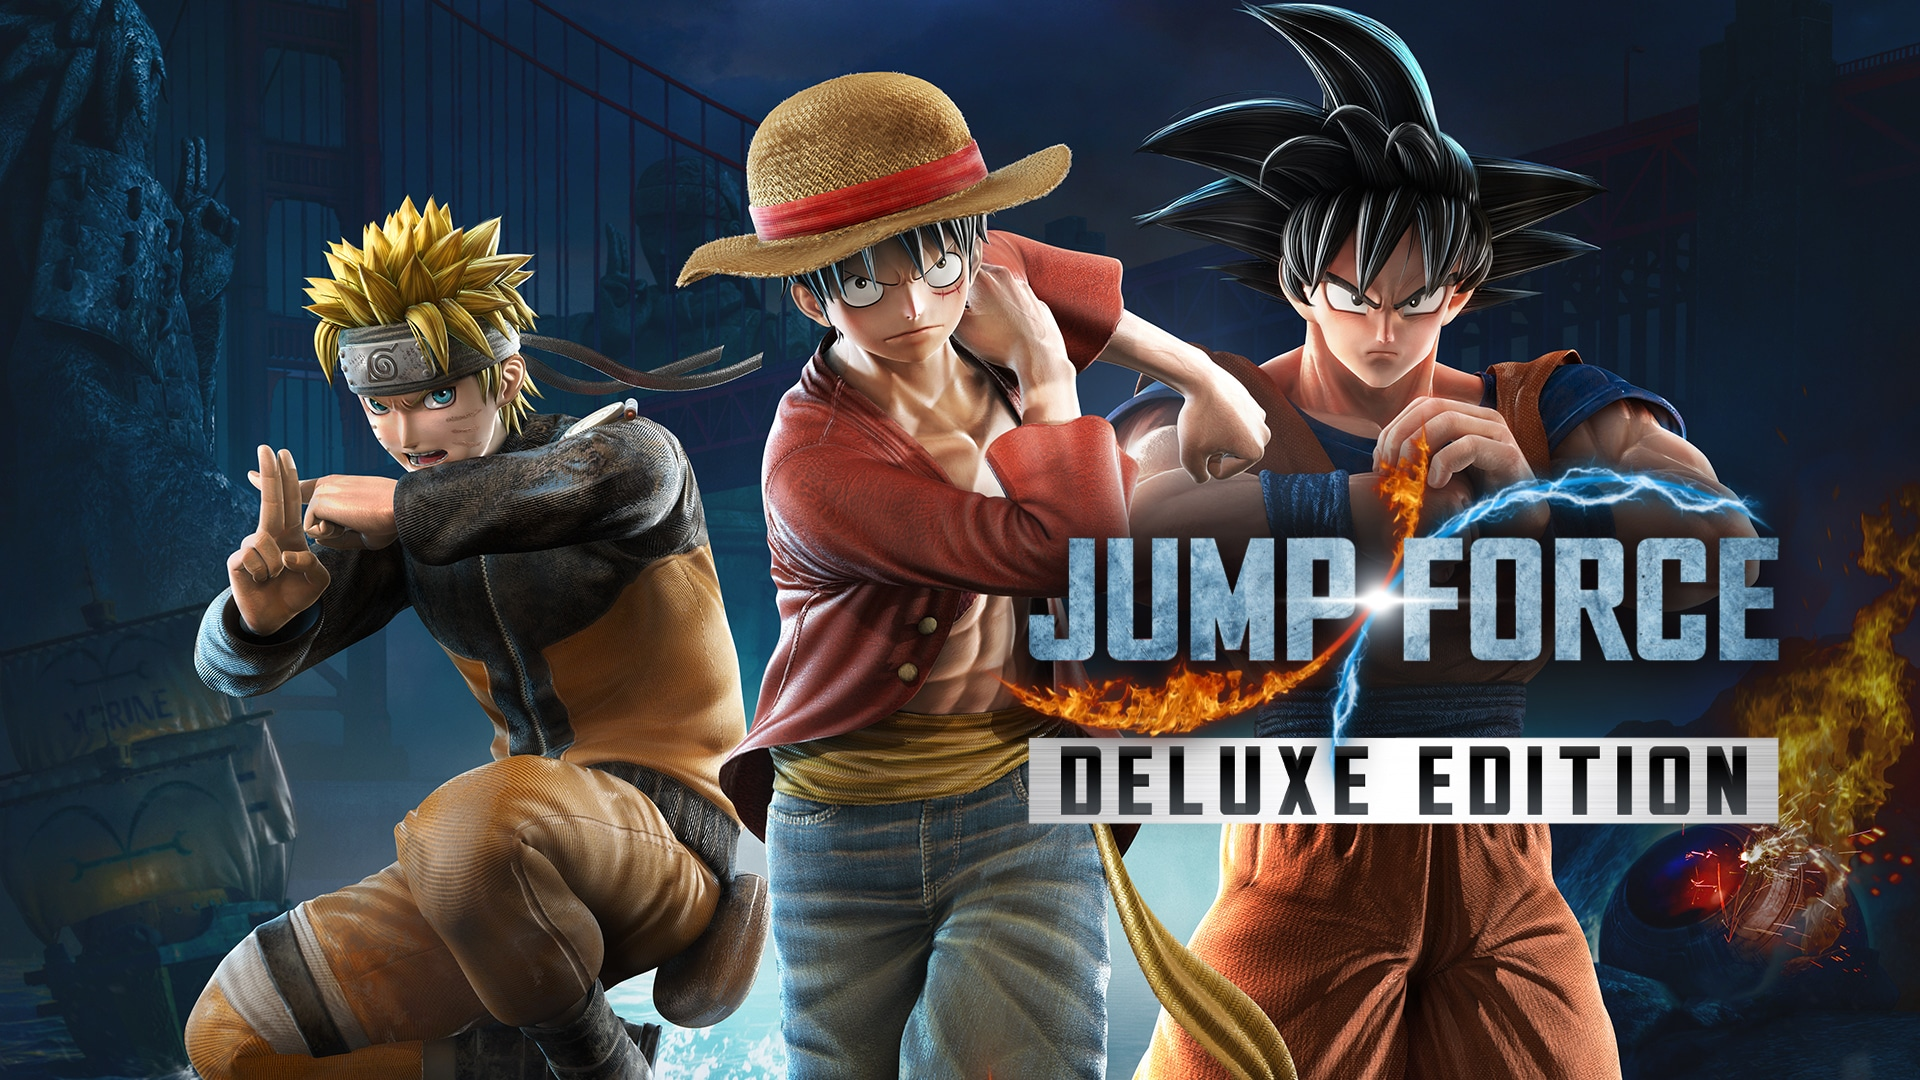 JUMP FORCE Deluxe Edition – Meruem confirmed